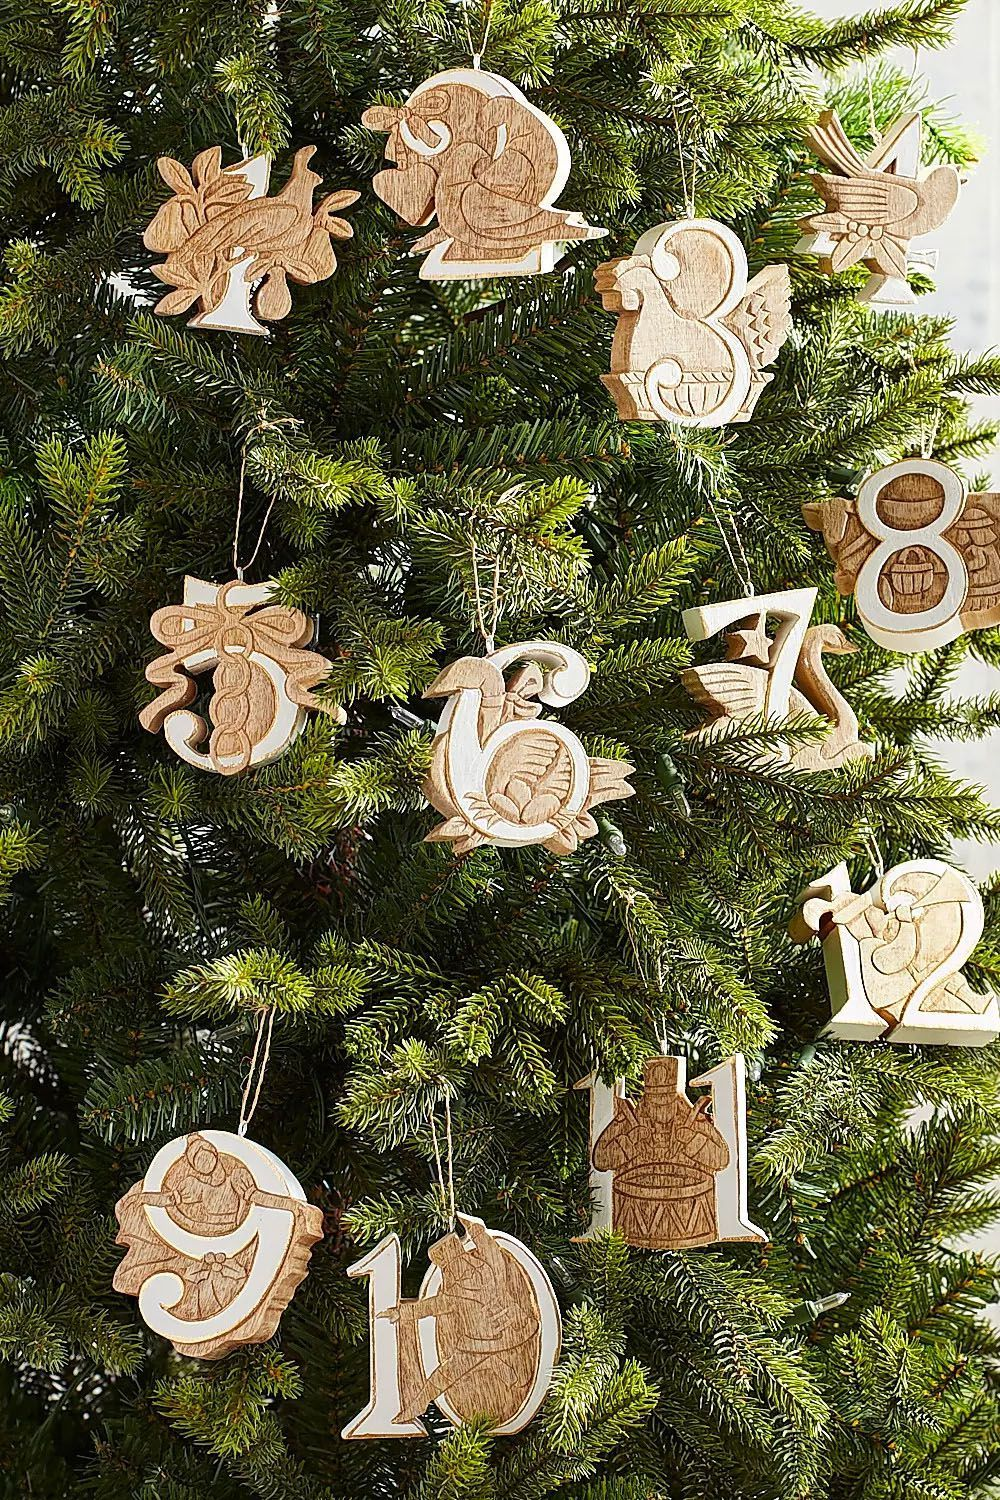 medium resolution of 34 unique christmas tree decorations 2018 ideas for decorating your christmas tree